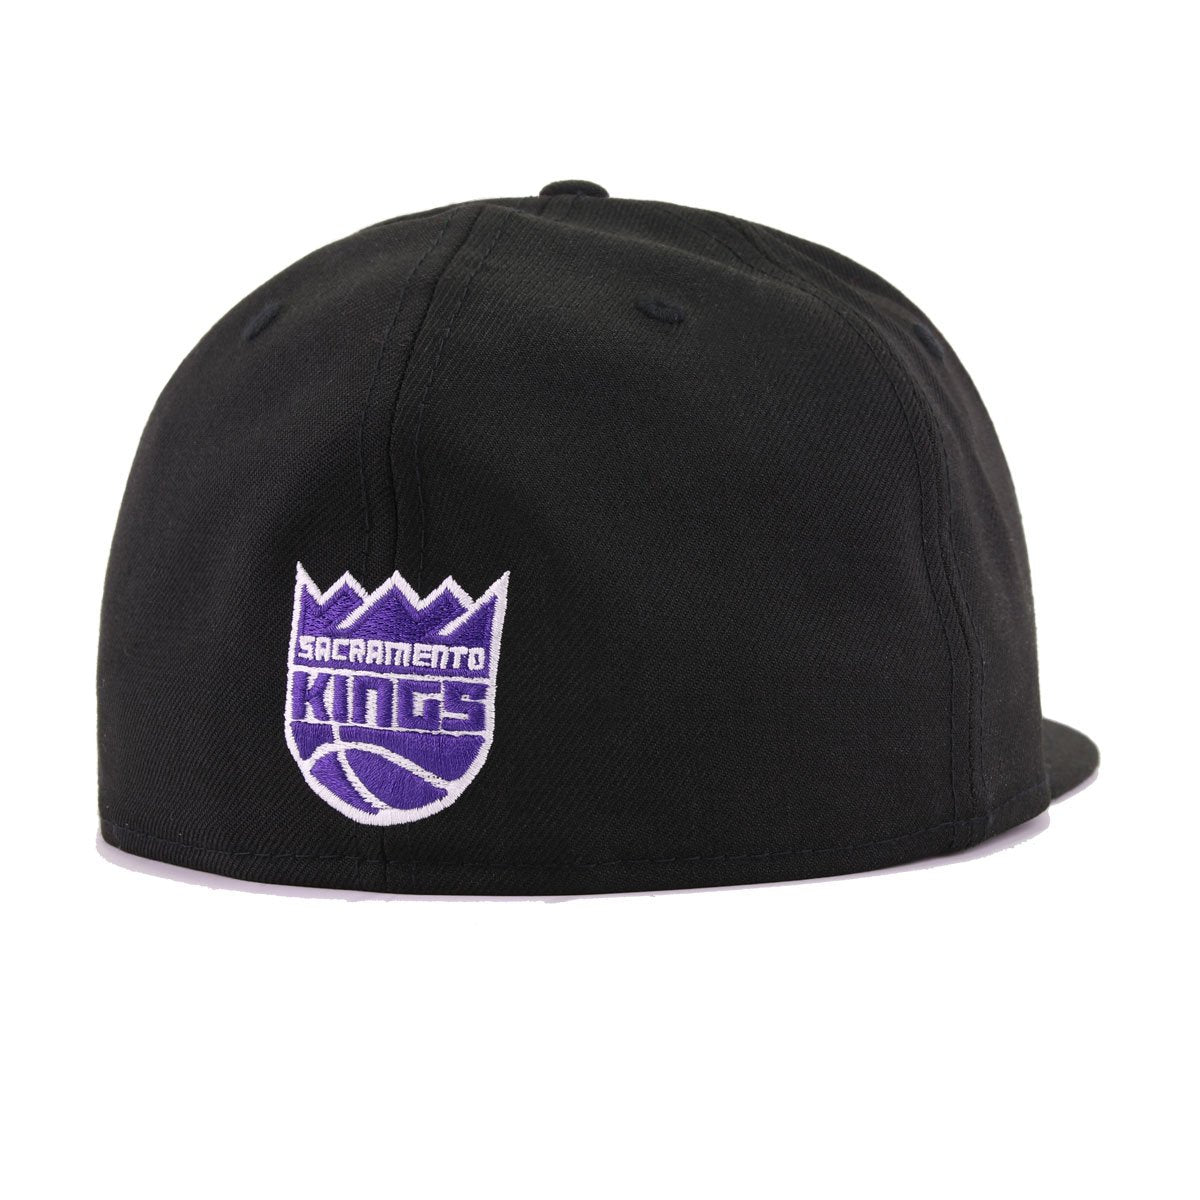 finest selection 710fd 9ea96 Sacramento Kings Black Metallic Silver Purple Maze New Era 59Fifty Fitted